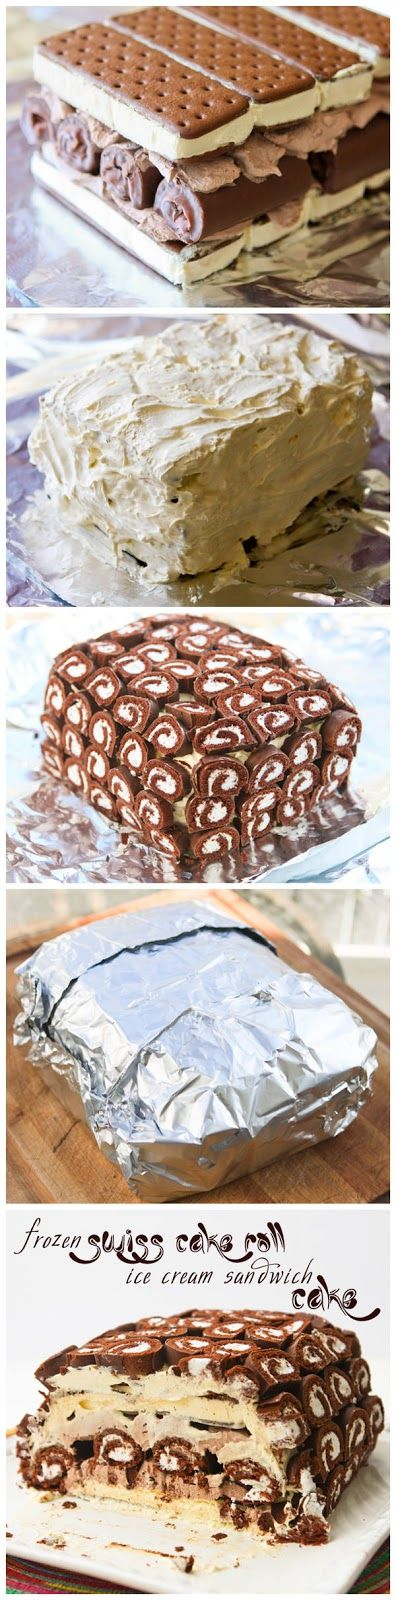 Frozen Swiss Cake Roll Ice Cream Sandwich Cake